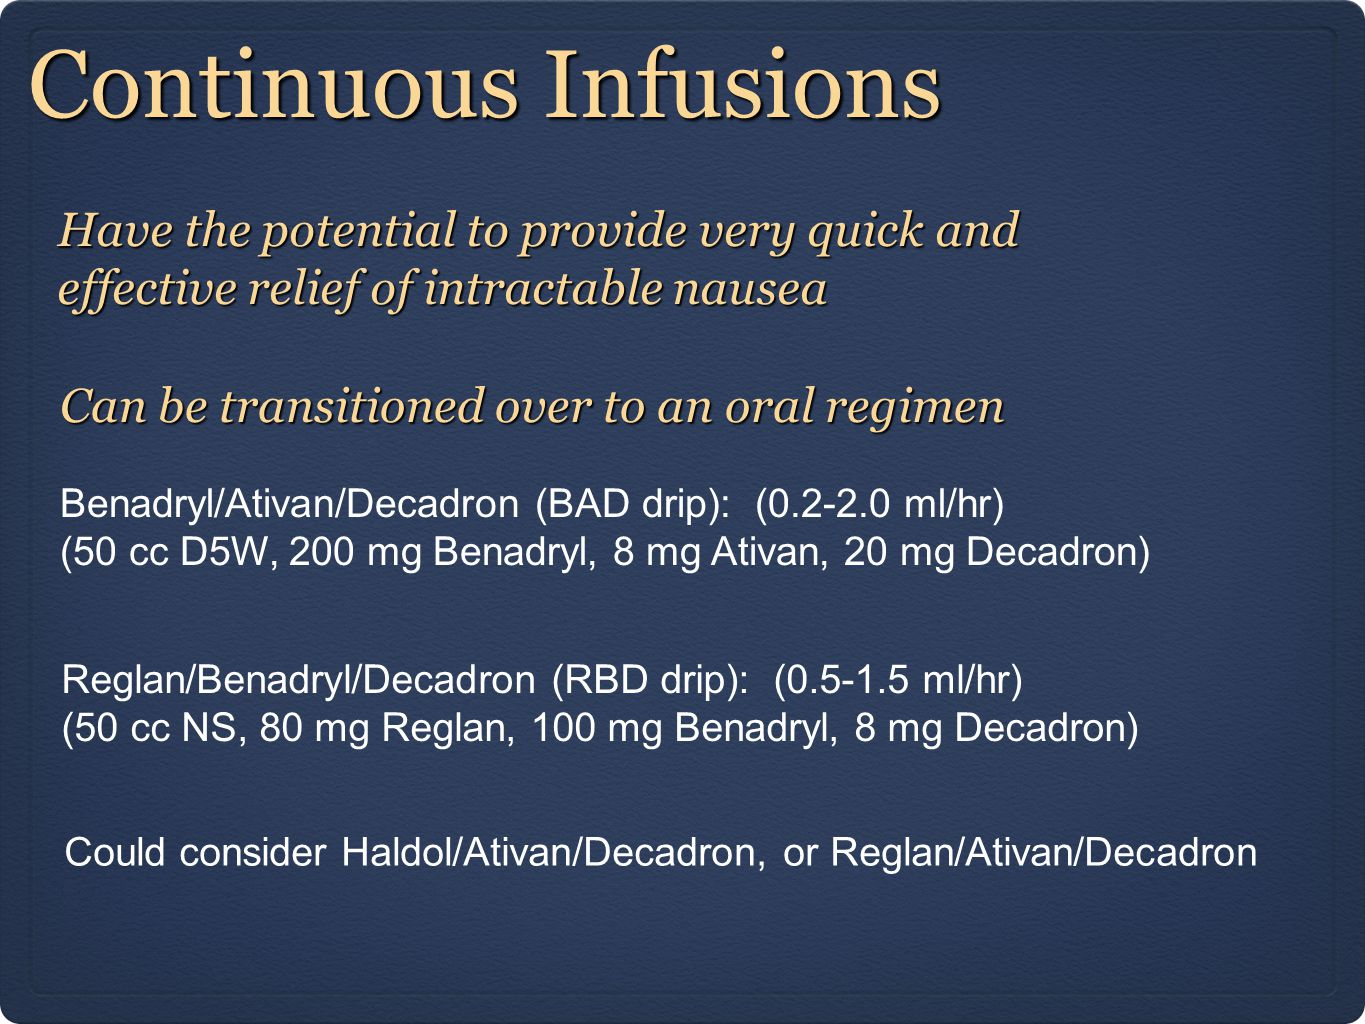 Continuous Infusions Have the potential to provide very quick and effective relief of intractable nausea.